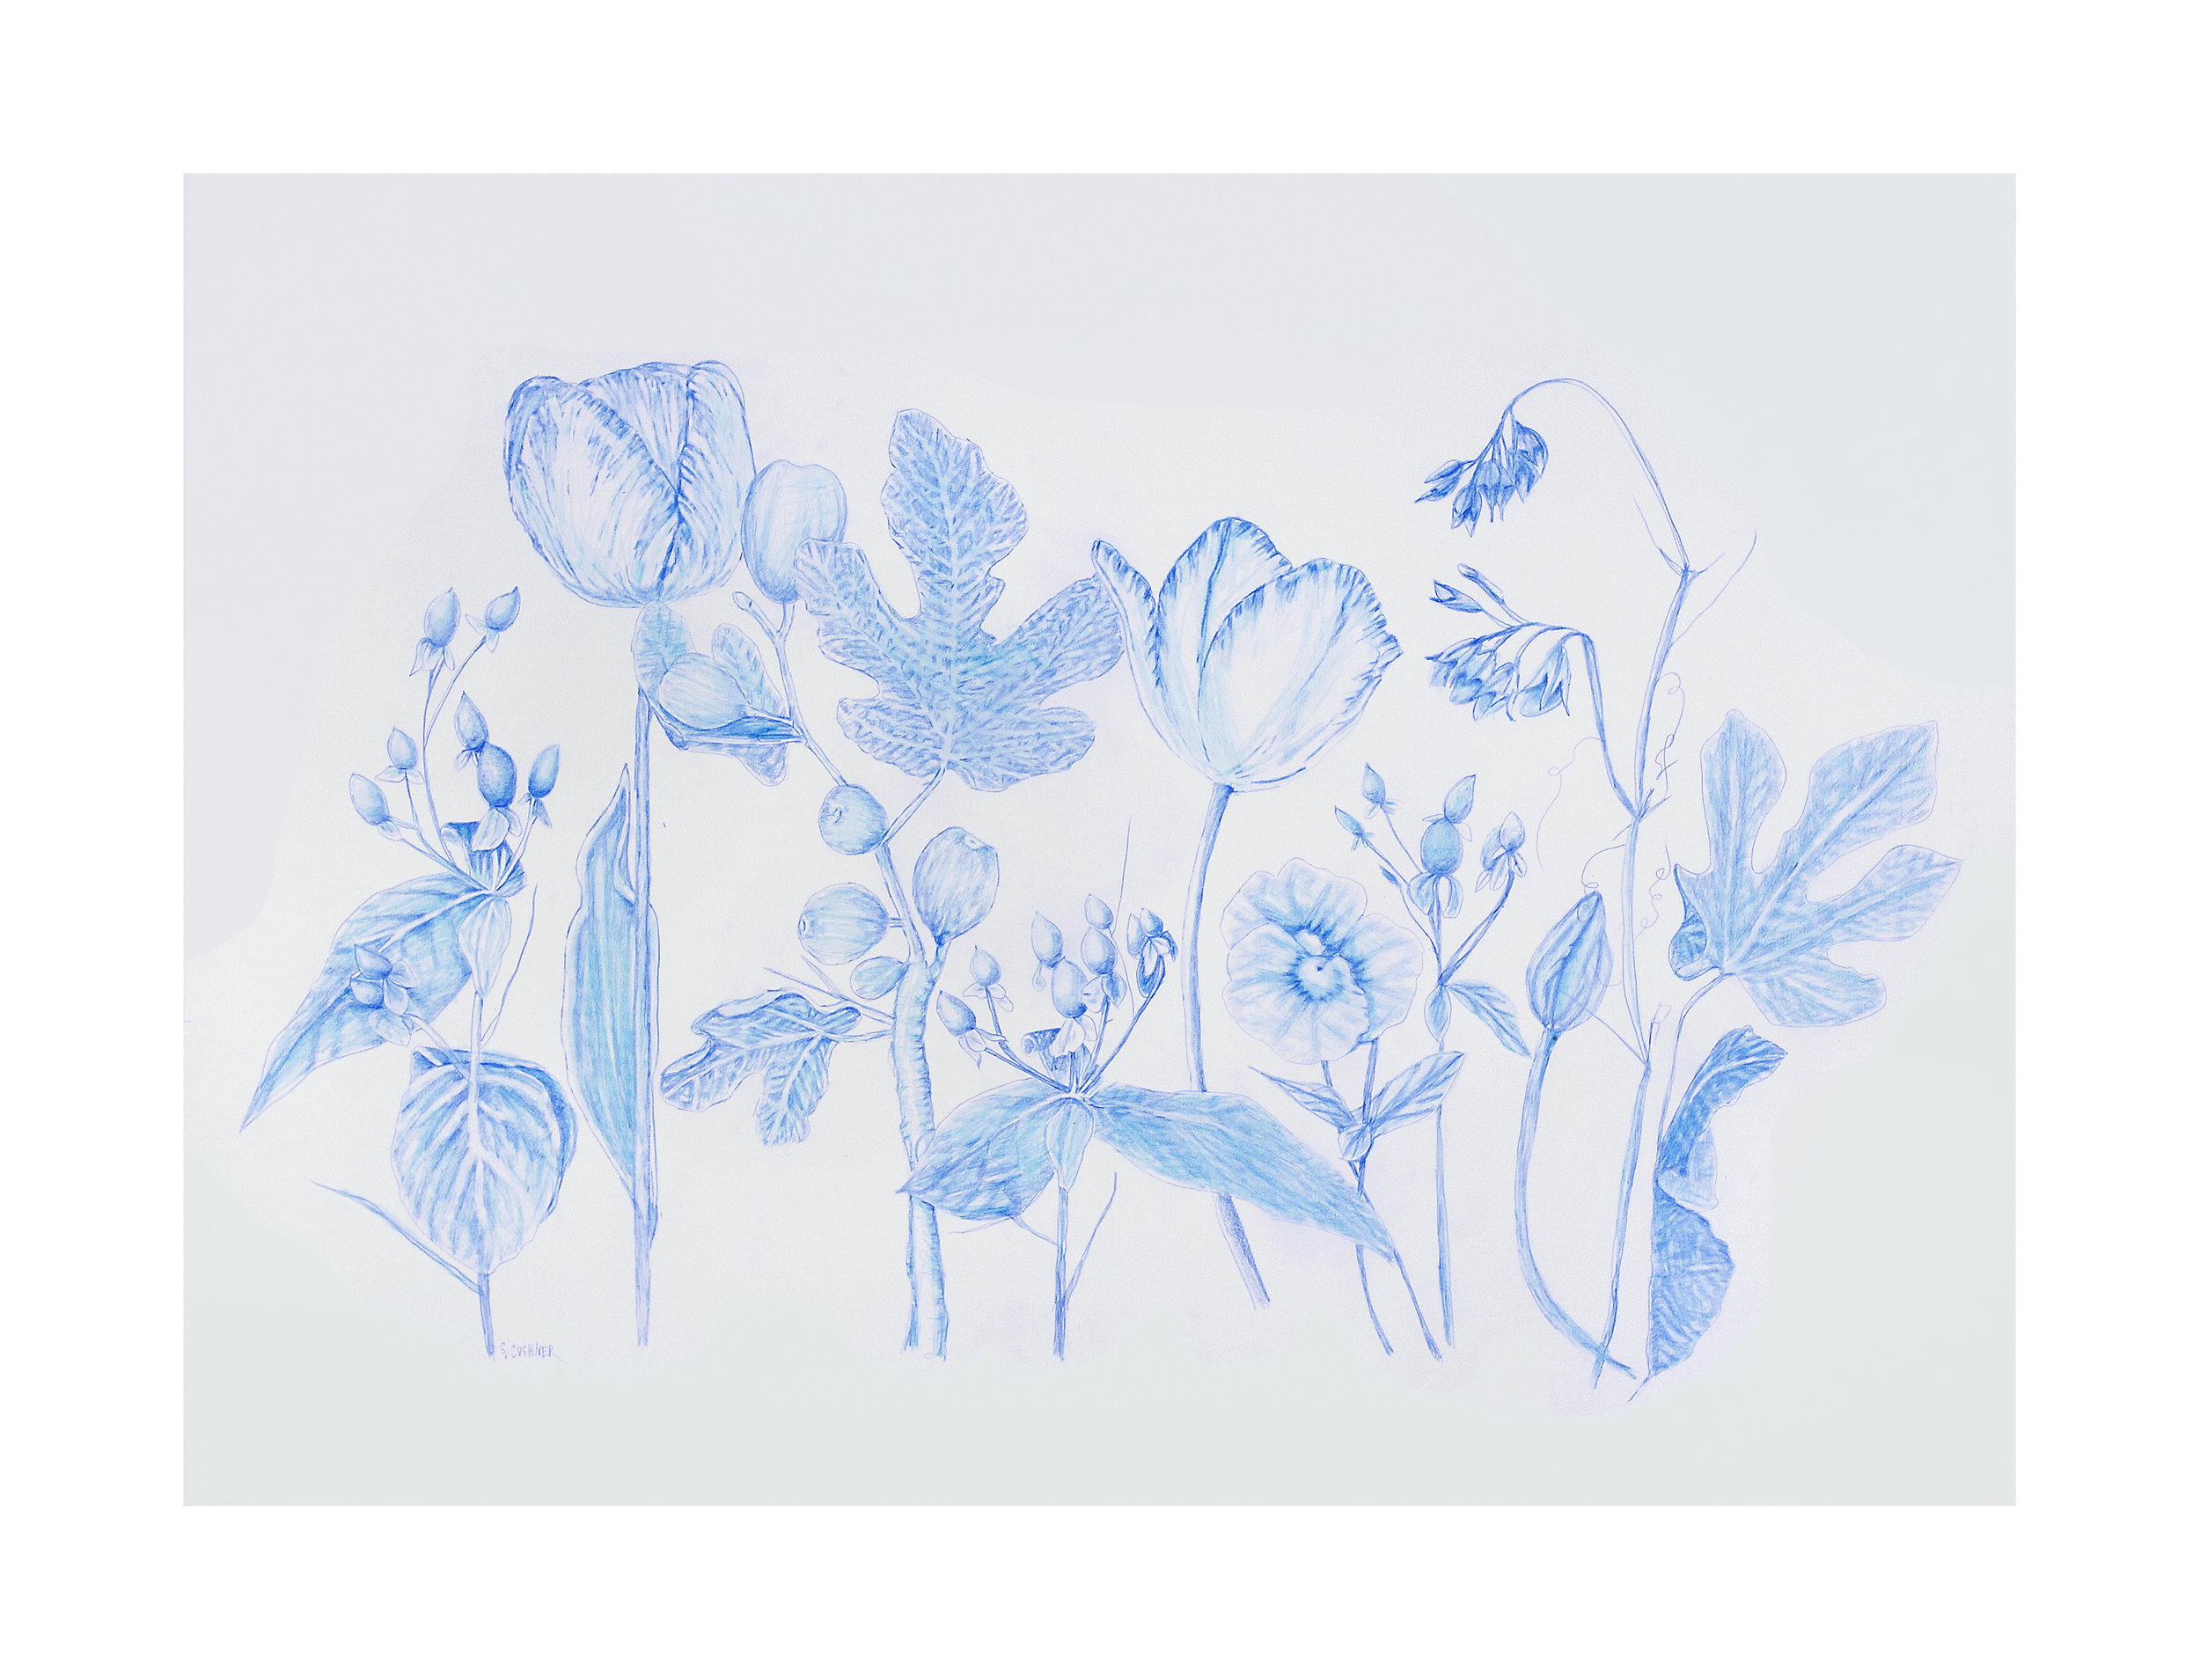 Botanical 1 Blue Pencil on Arches Paper 22 x 30 inches 2018